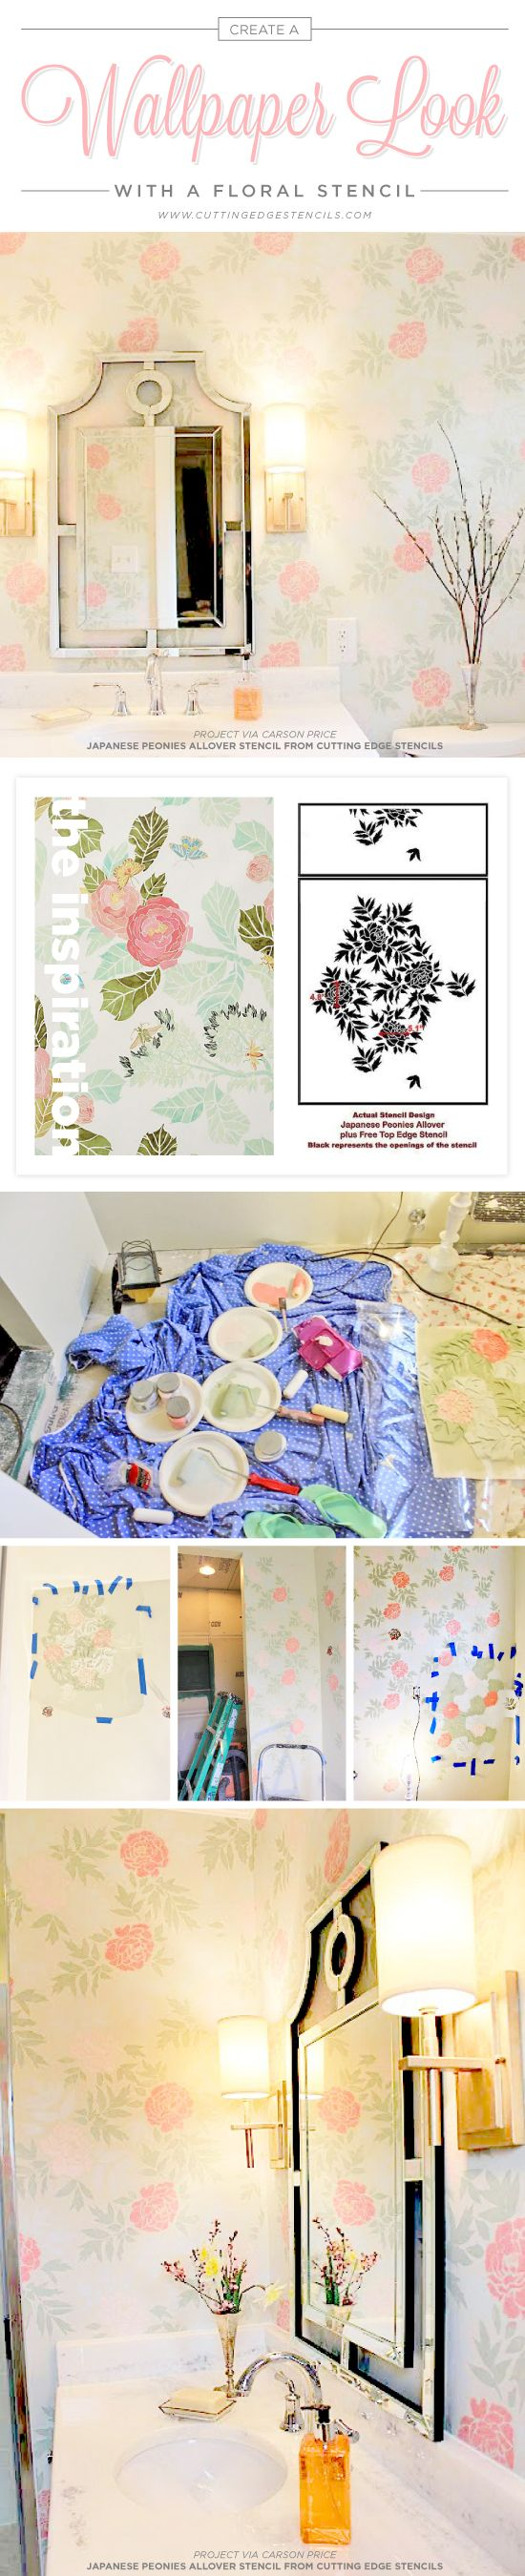 Best 25 diy stenciled walls ideas on pinterest stencil wall art cutting edge stencils shares a diy stenciled bathroom using the japanese peonies allover stencil for a amipublicfo Images